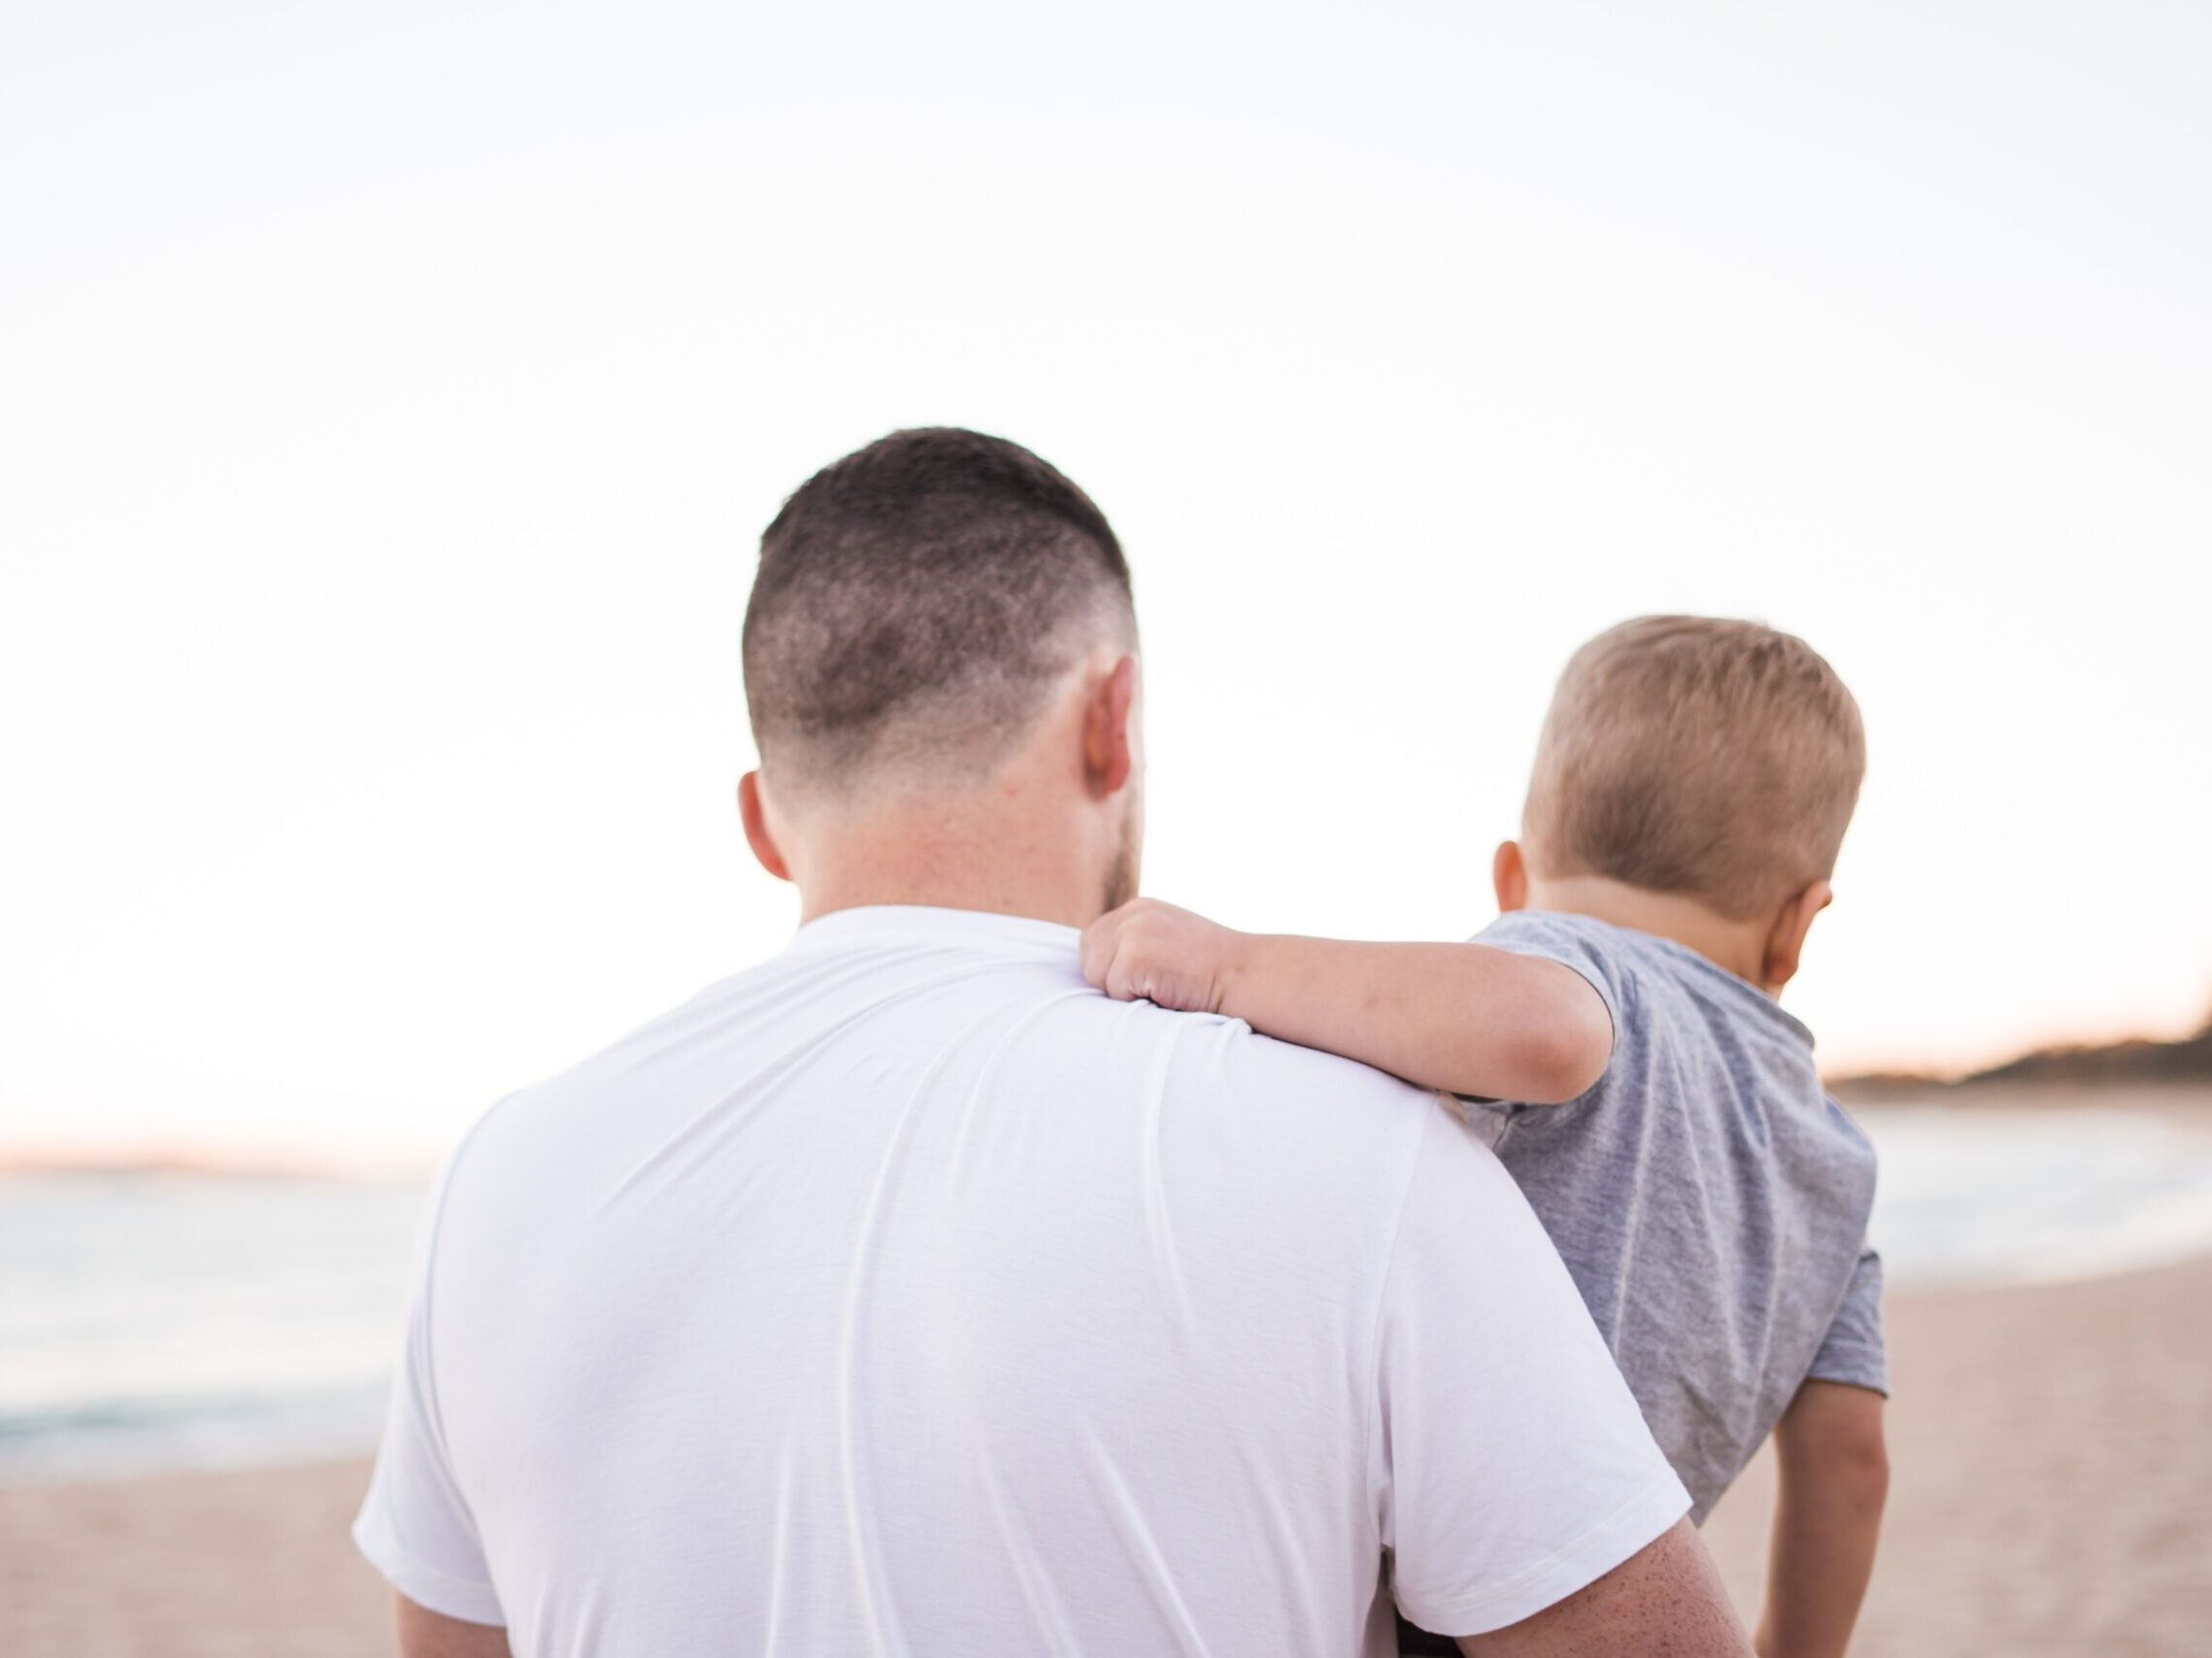 man carrying baby near the ocean